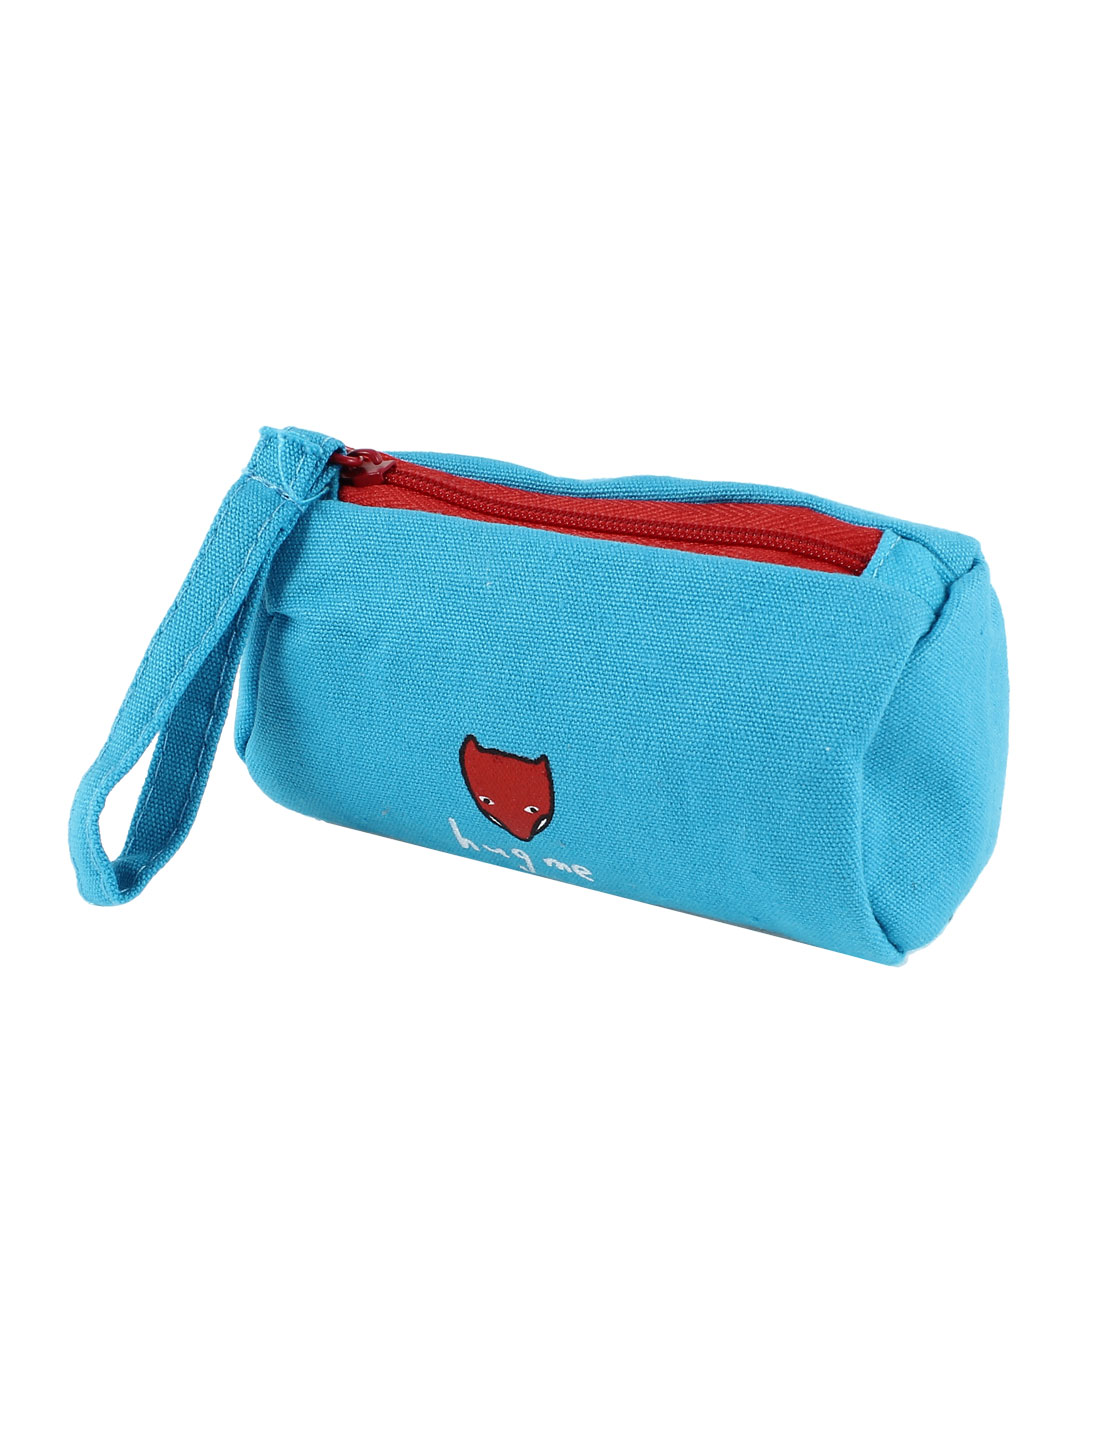 Canvas Zipper Closure Fox Pattern Key Ring Money Coin Change Purse Red Blue